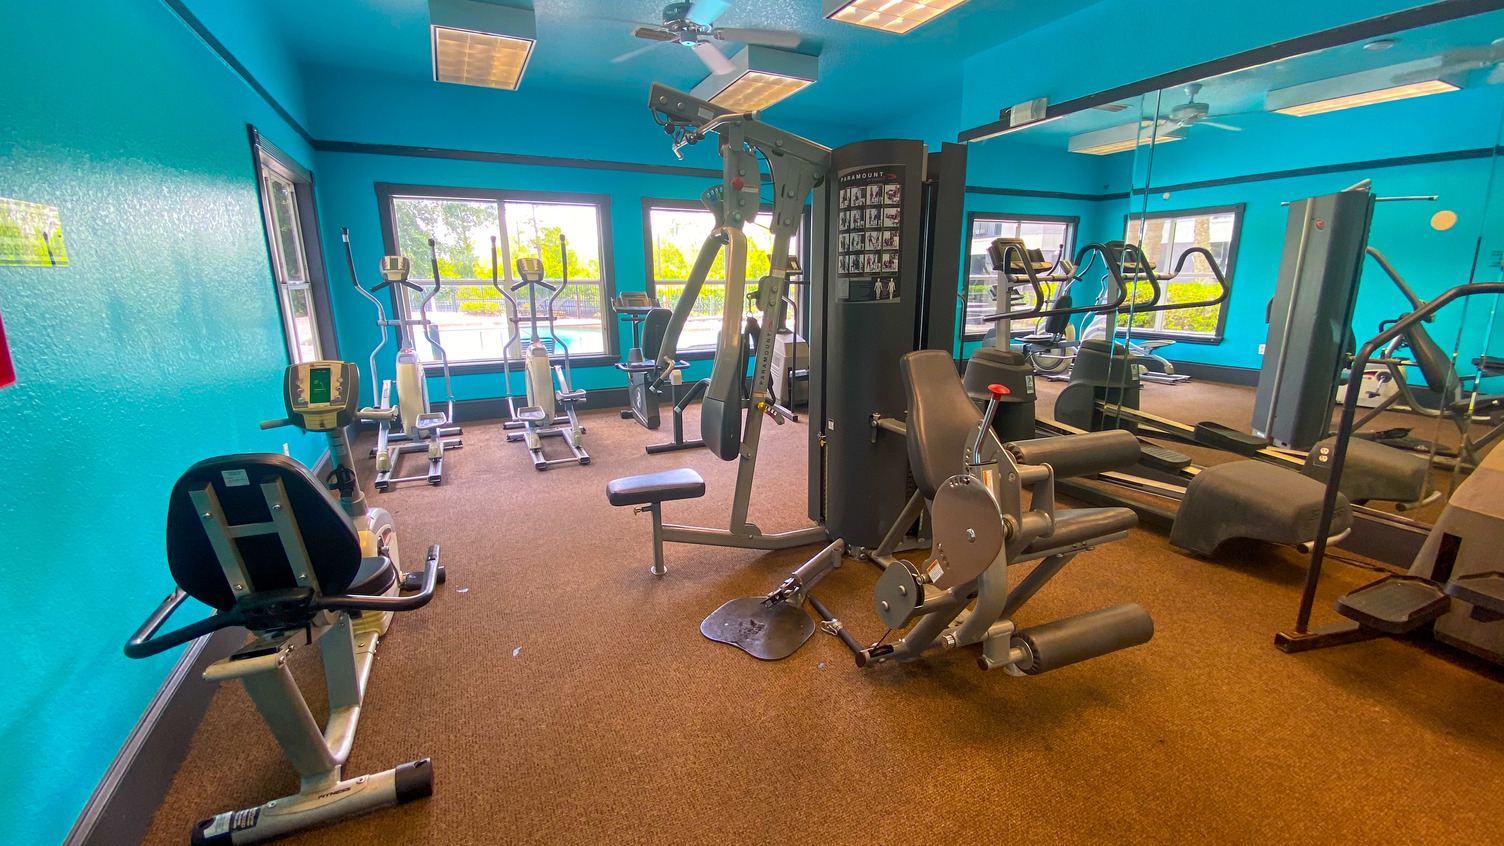 Fitness center with cardio equipment, strength training equipment, and large windows for natural lighting